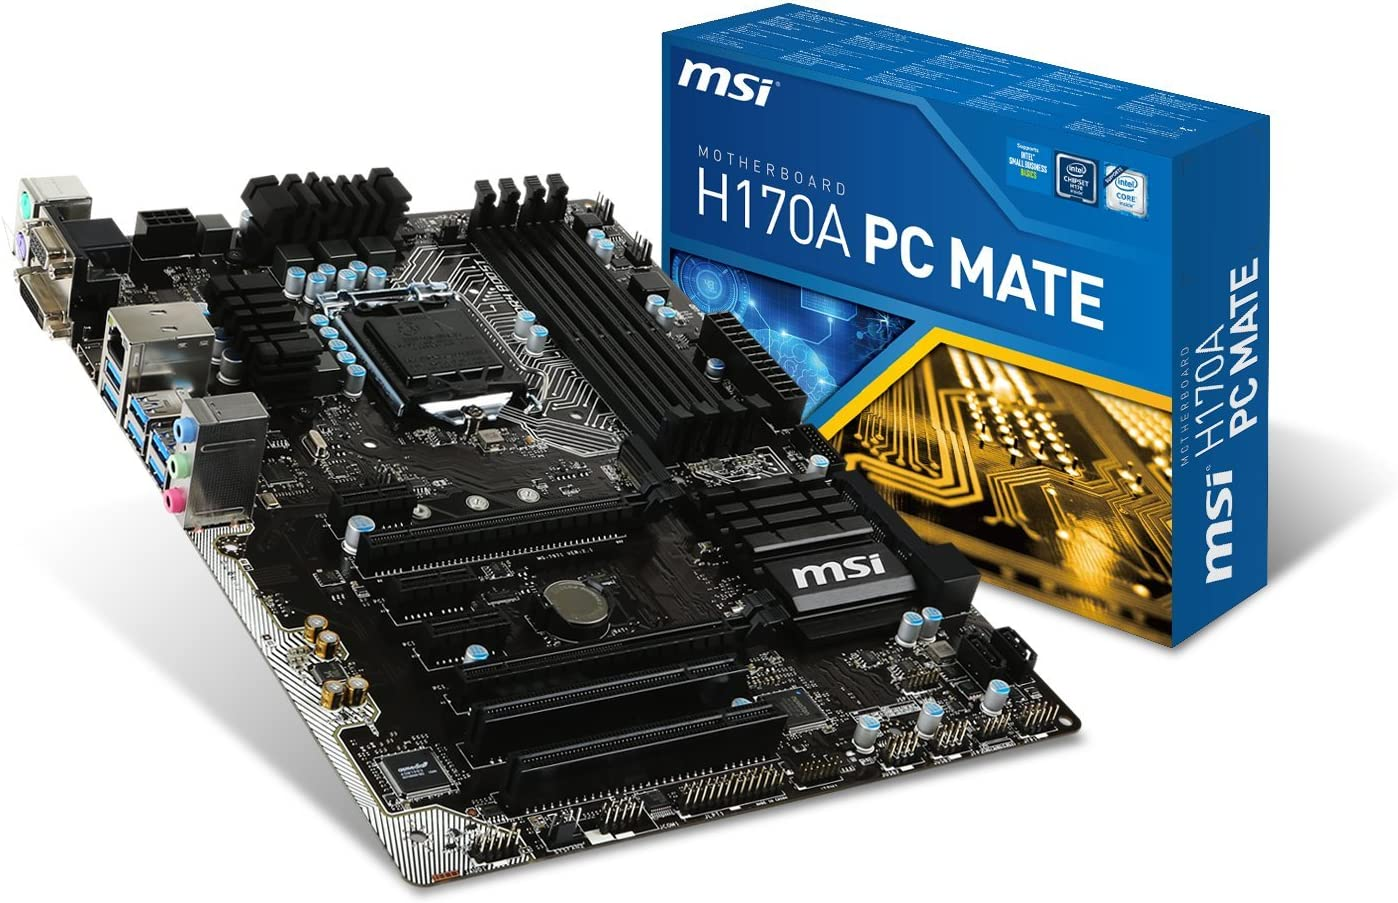 MSI Intel Skylake H170 LGA 1151 DDR4 USB 3.1 ATX Motherboard (H170A PC Mate)